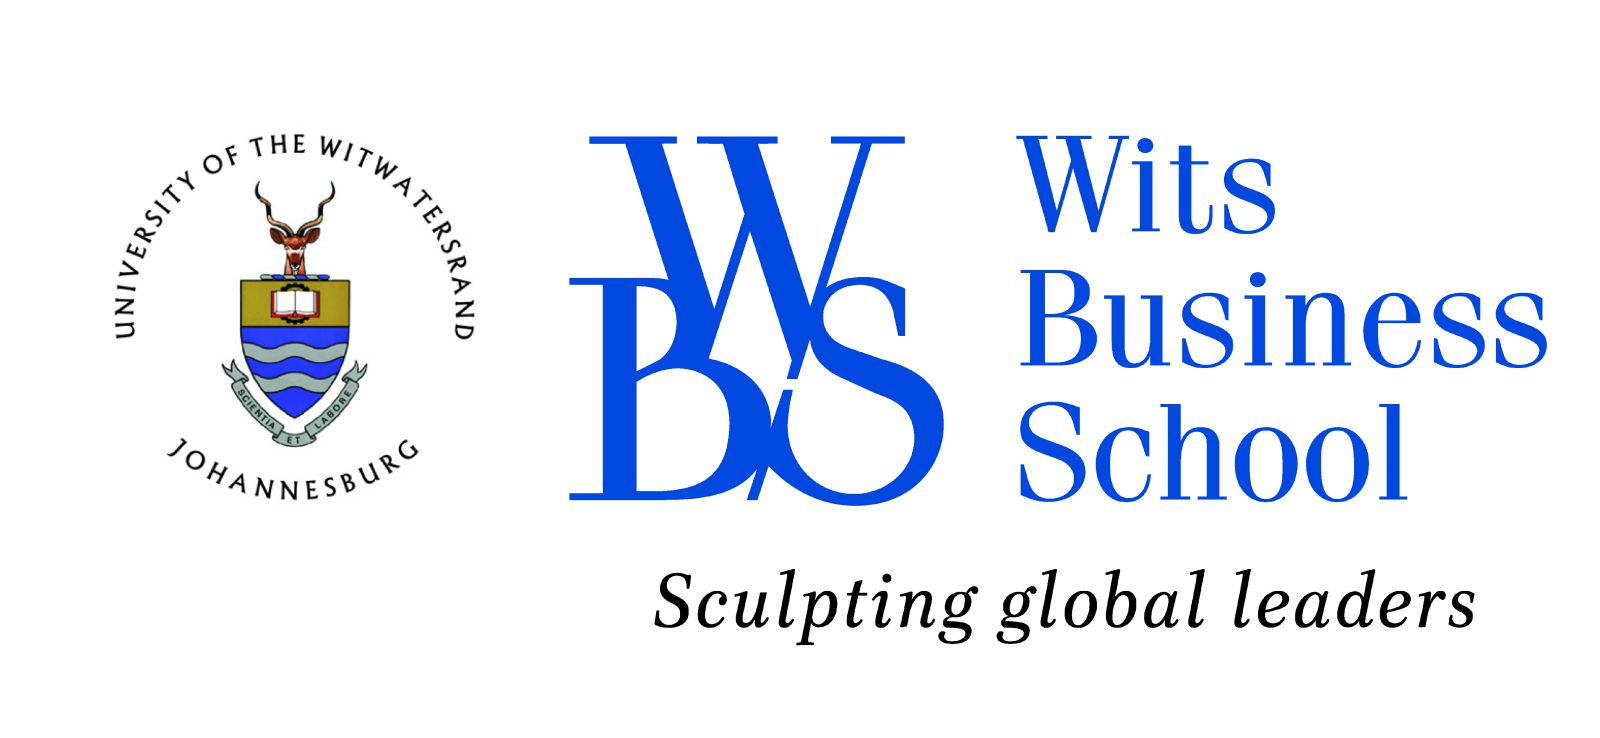 wits business school offers scholarships wits vuvuzela